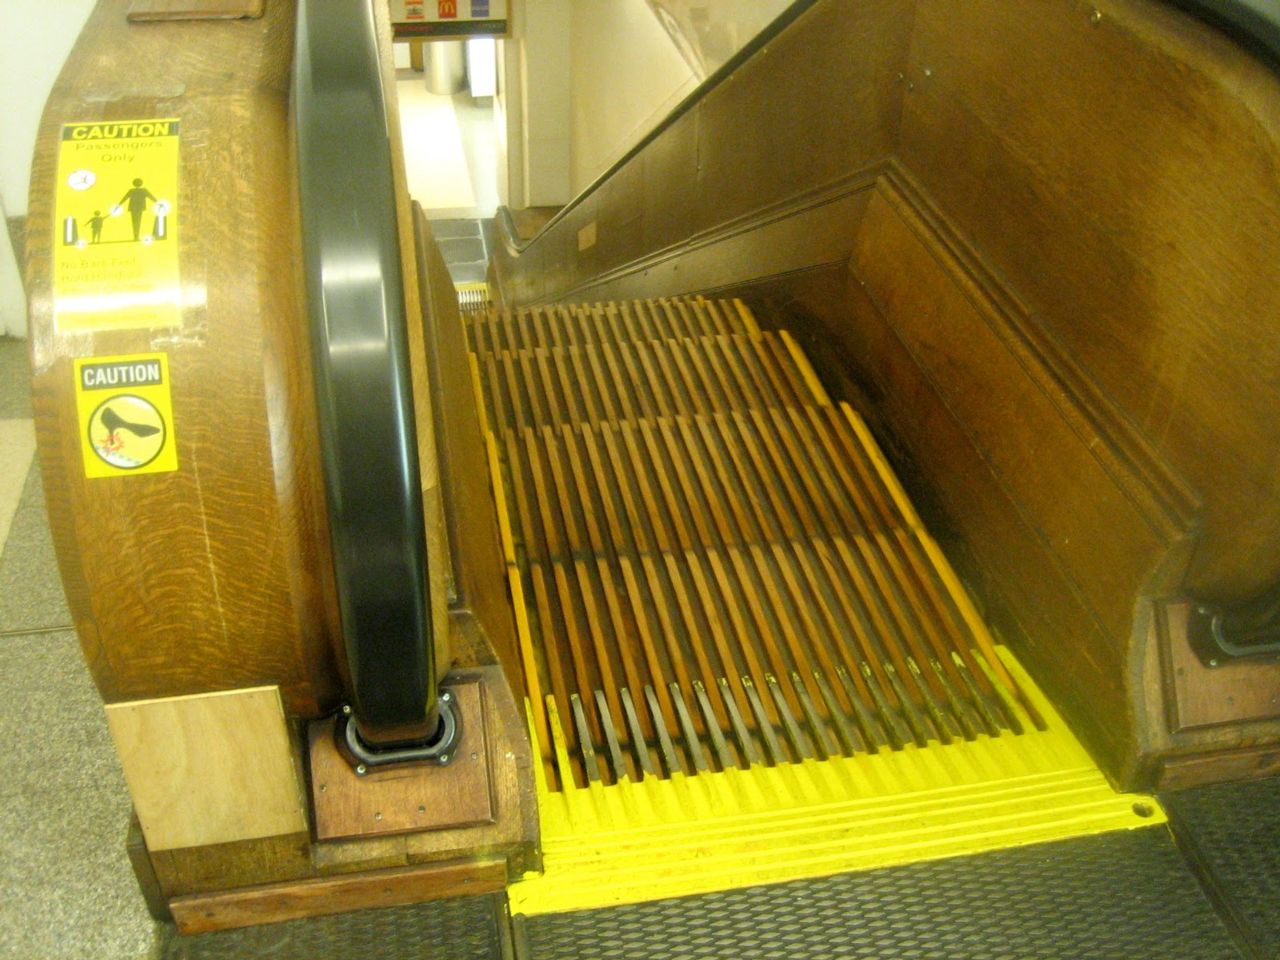 escalator injury accident